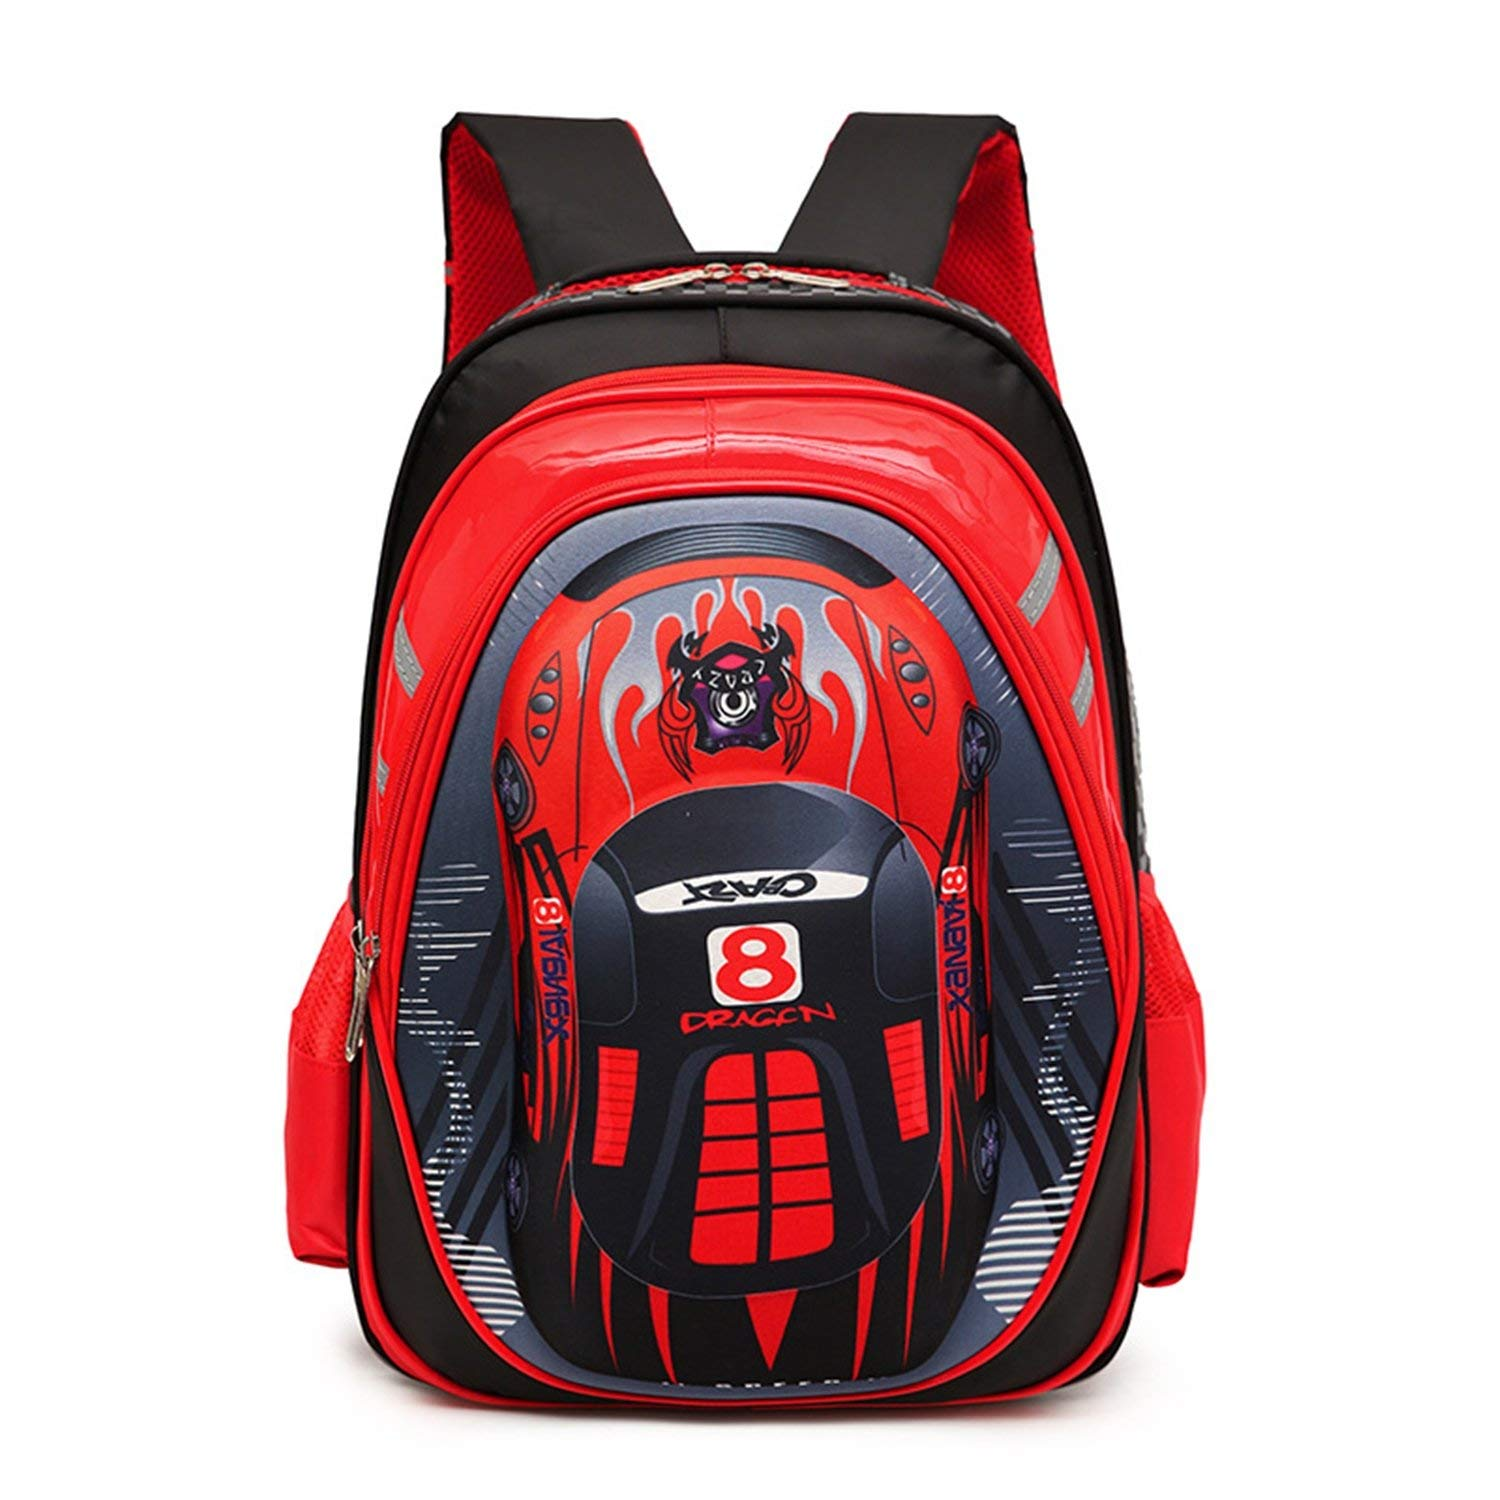 a701623f82 Get Quotations · HIGOGOGO Toy Car Schoolbag